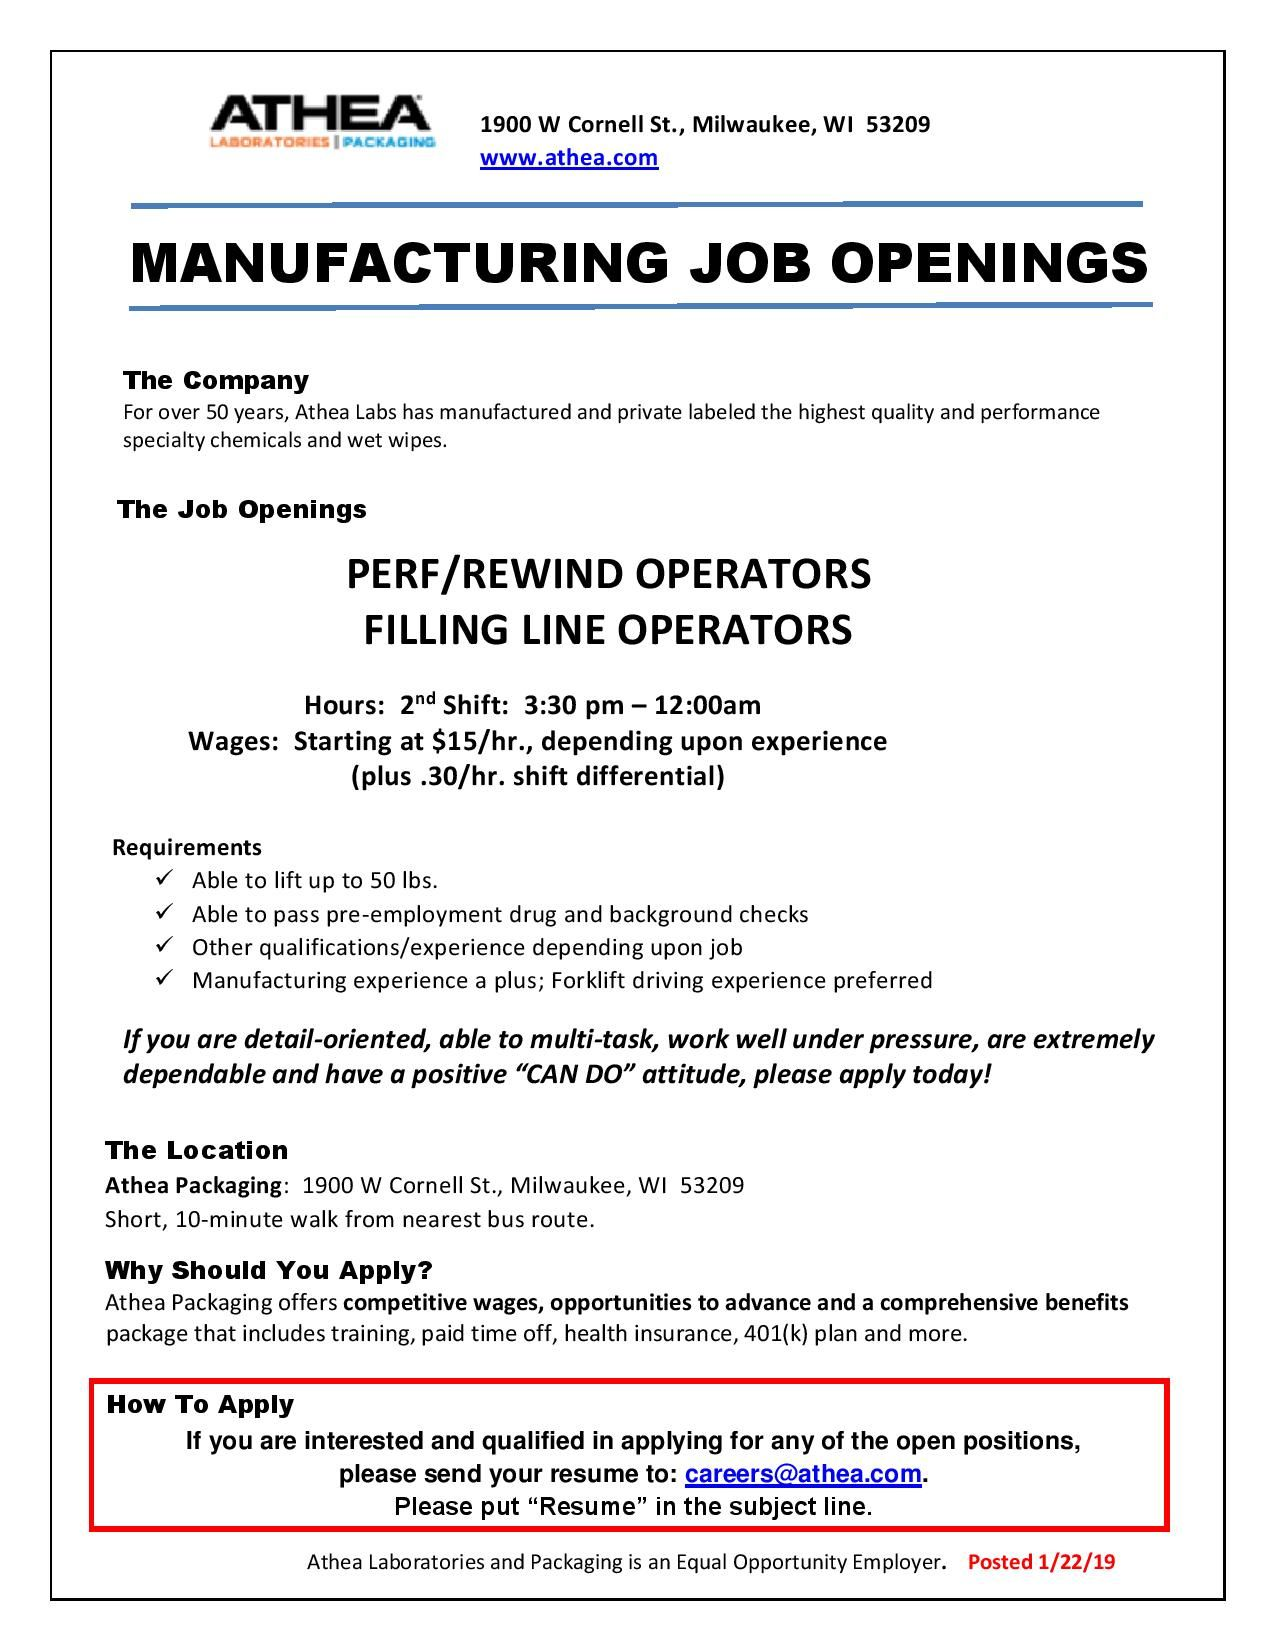 Employ Milwaukee On Twitter Athealabs Are Looking To Fill Positions For Perf Rewind Operators And Filling Line Operators Starting Wage Is 15 Hr Depending On Experience To Apply Please Send Your Resume To Careers Athea Com